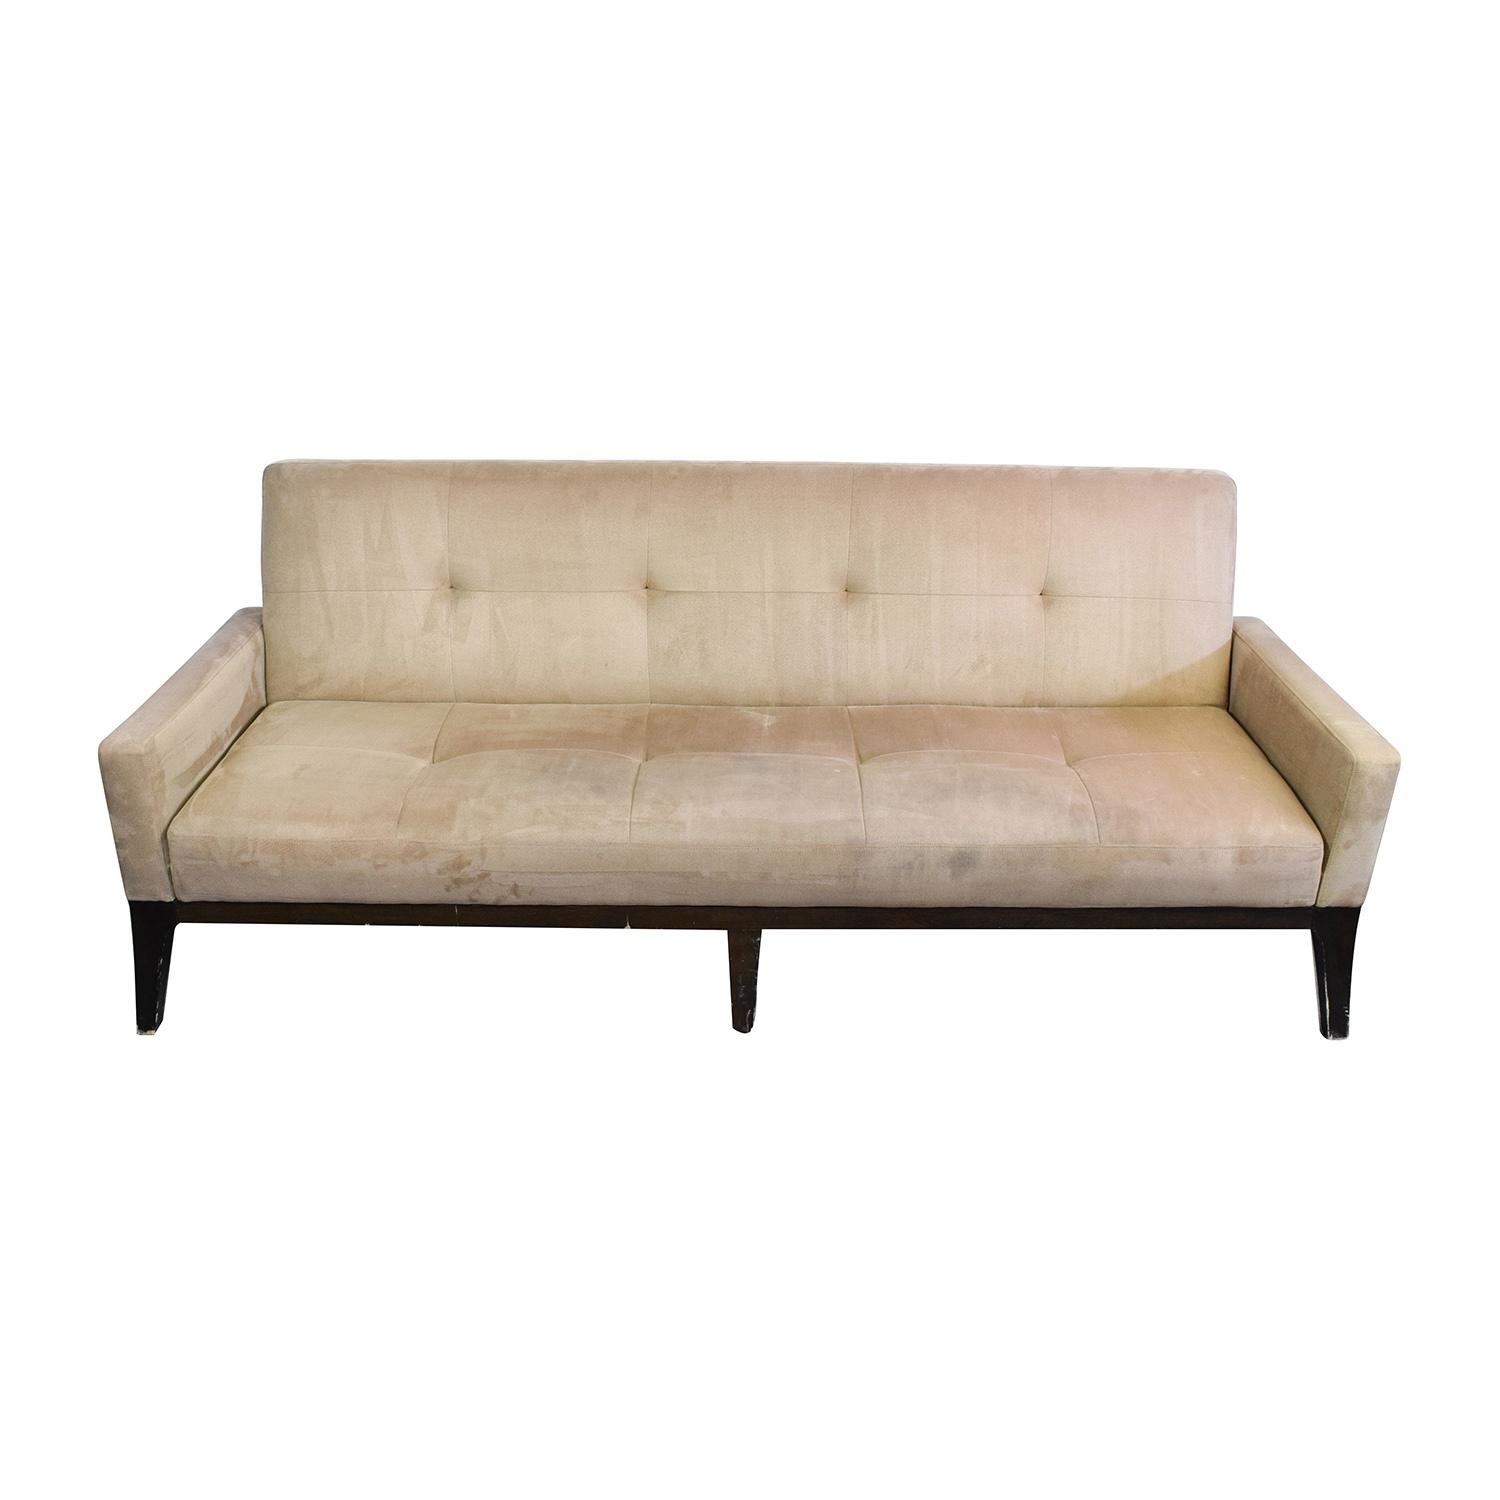 82% Off – Crate And Barrel Crate & Barrel Beige Tufted Futon Sofa Regarding Crate And Barrel Futon Sofas (Image 14 of 20)